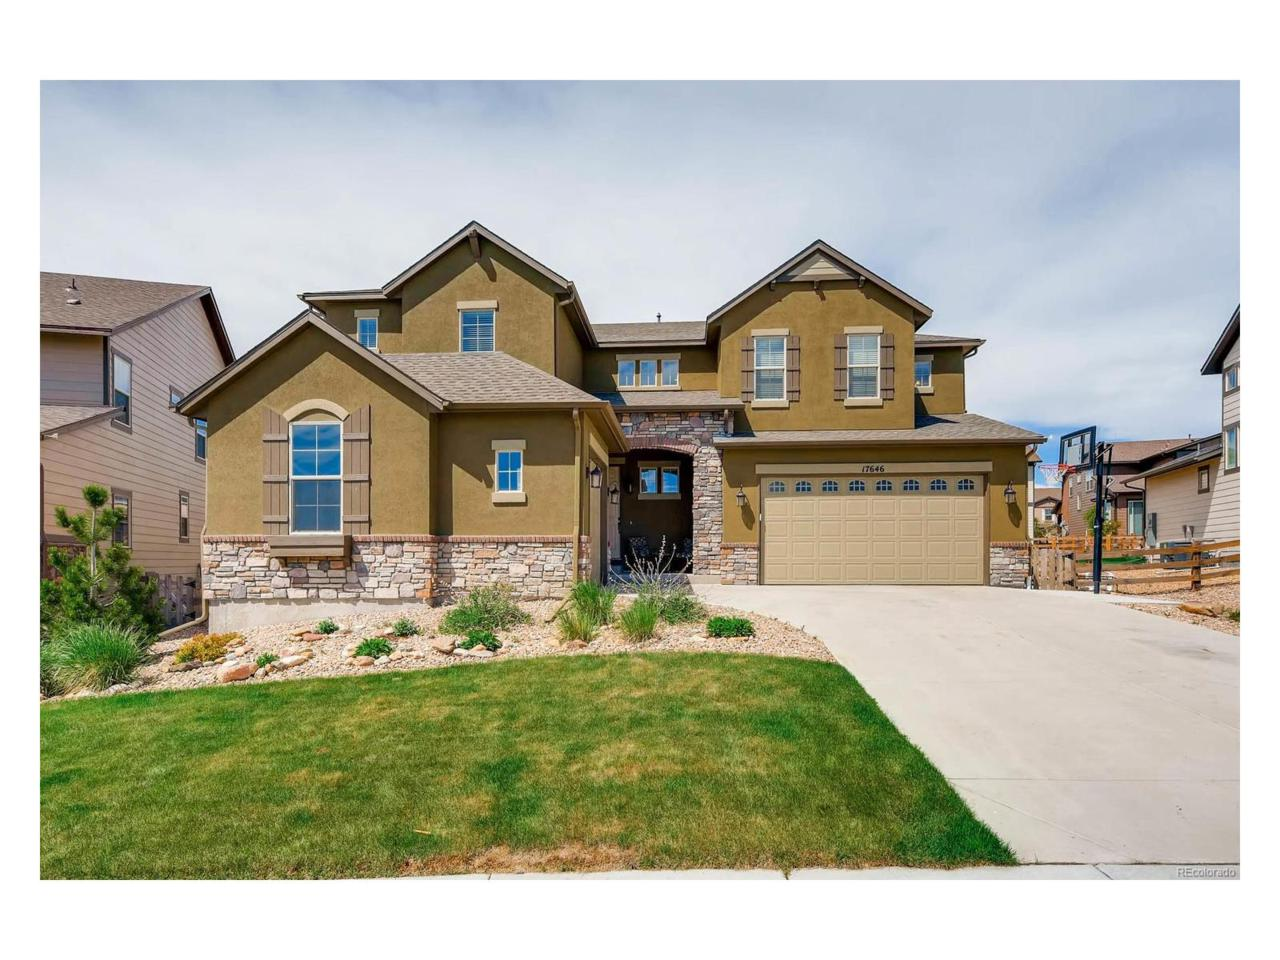 17646 W 83rd Drive, Arvada, CO 80007 (MLS #4041352) :: 8z Real Estate